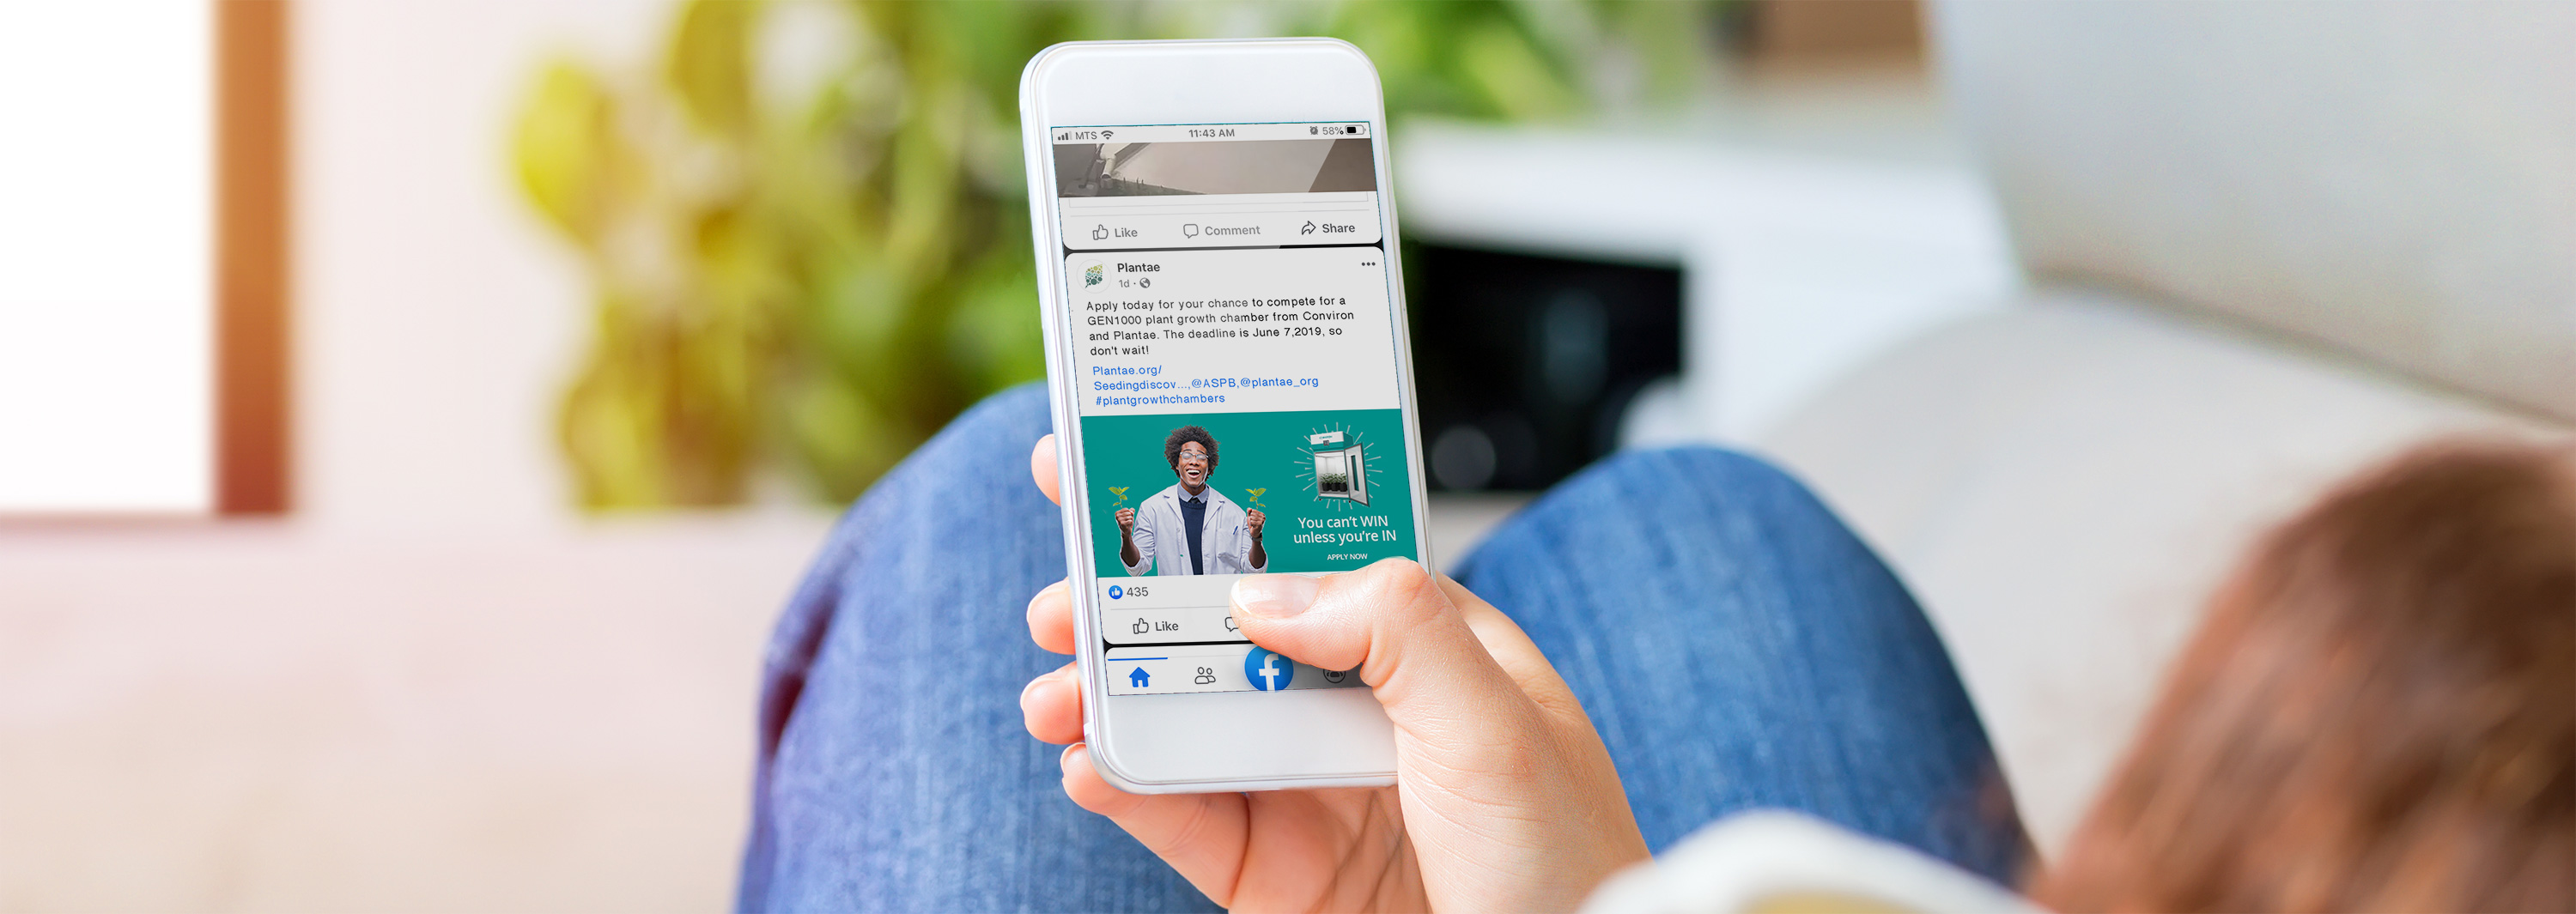 Facebook campaign designed by 6P Marketing for Conviron shown on a mobile device